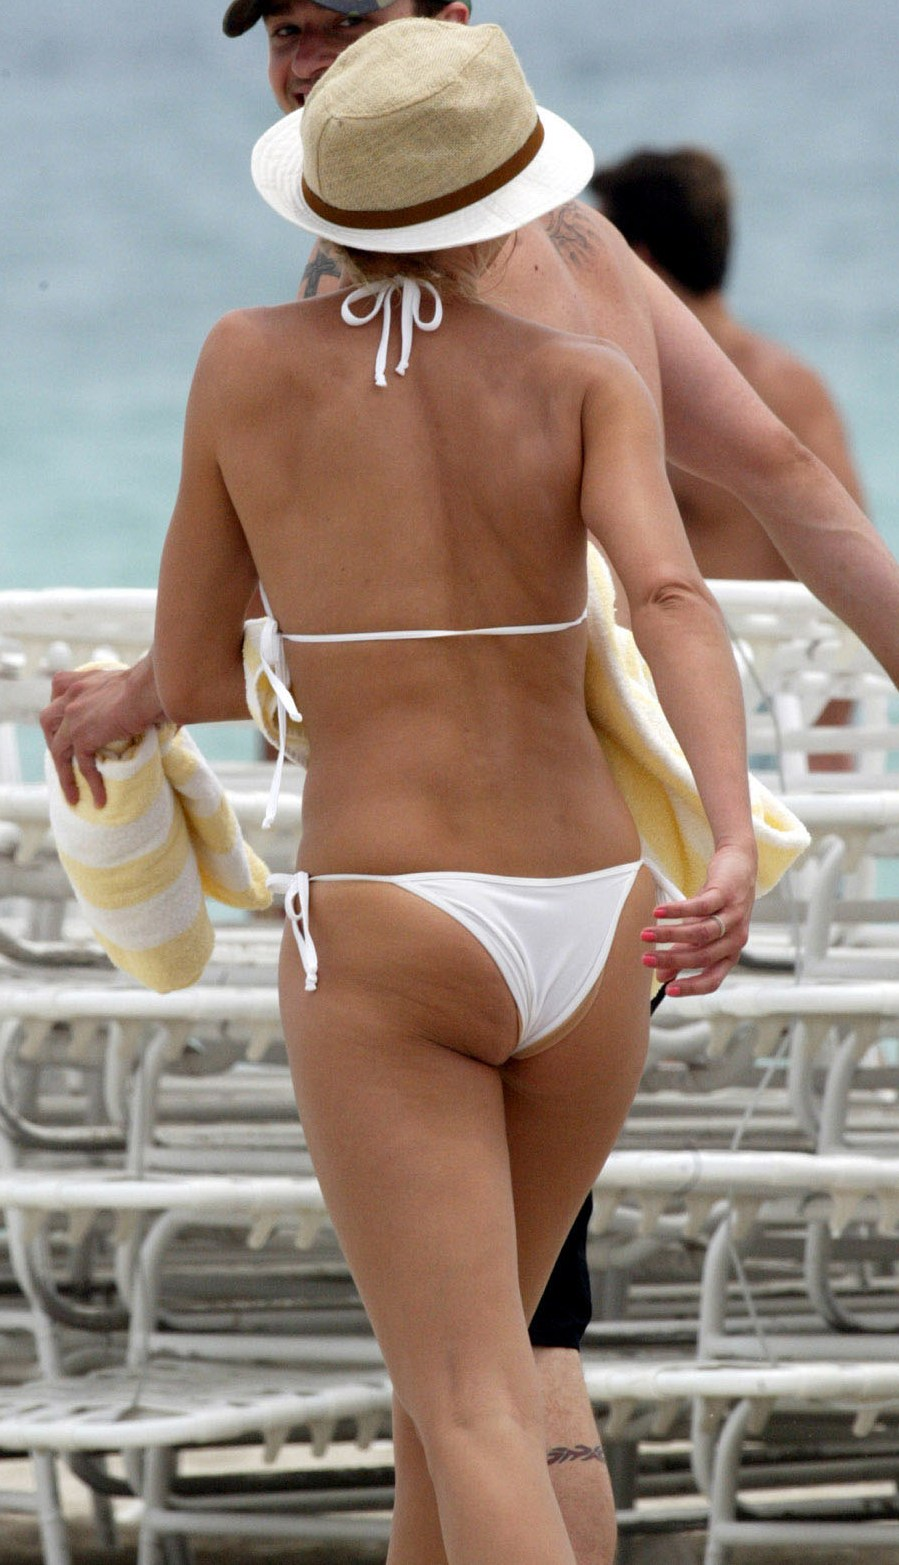 Consider, that Cameron diaz see through bikini thought differently